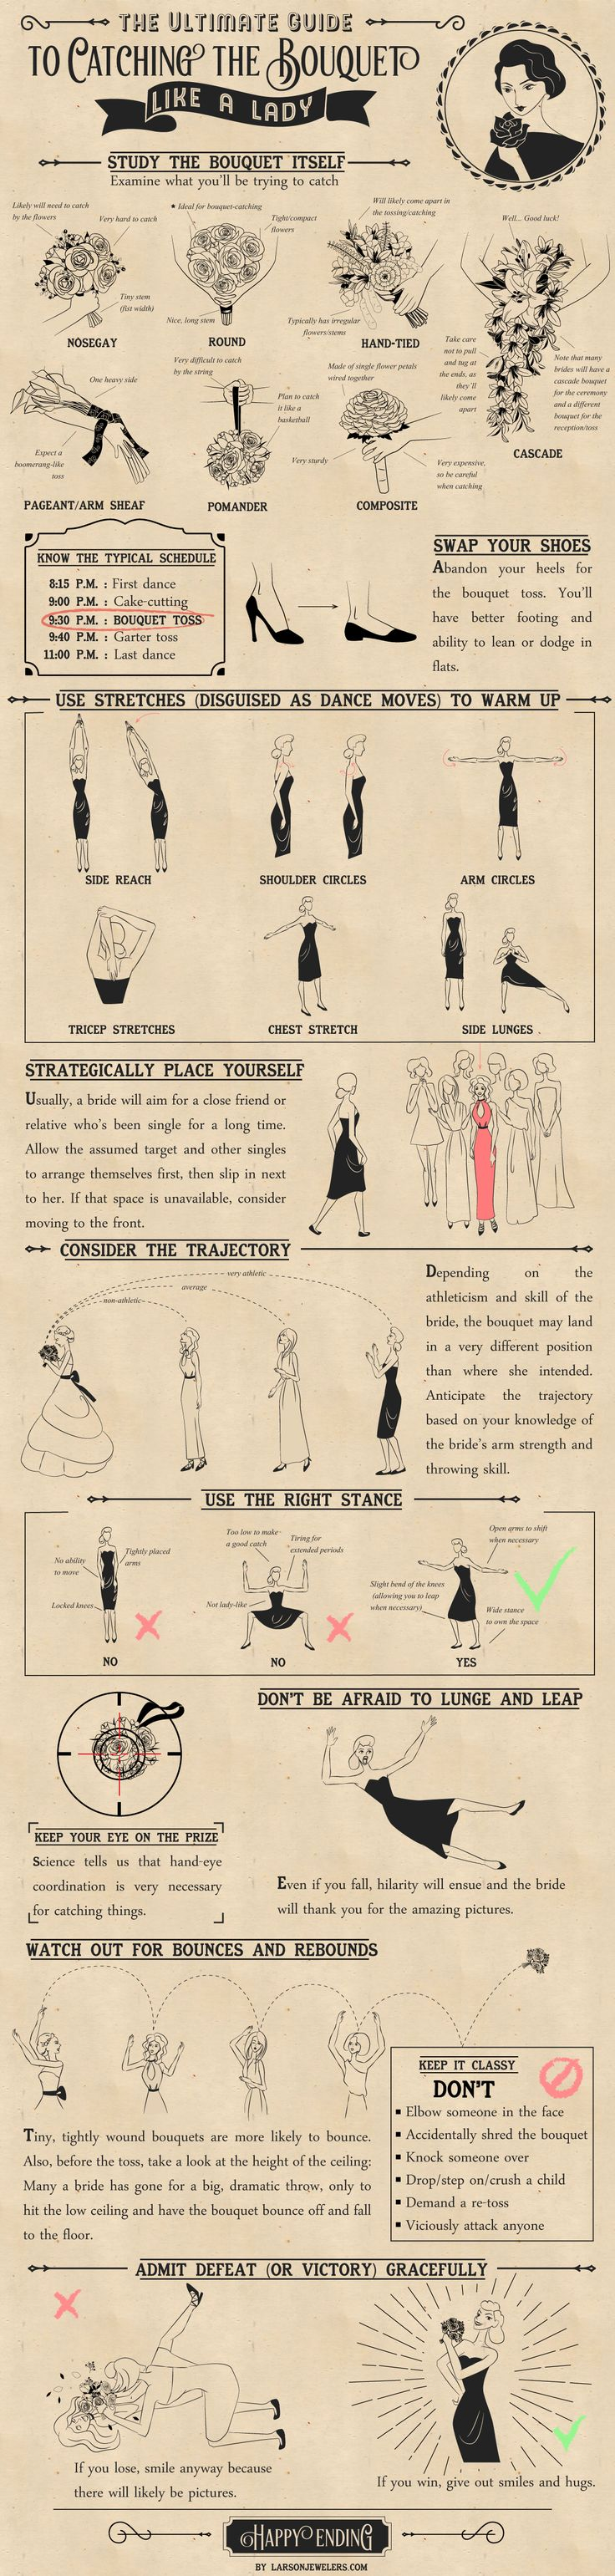 The Ultimate Guide to Catching the Wedding Bouquet Like a Lady #infographic #Wedding